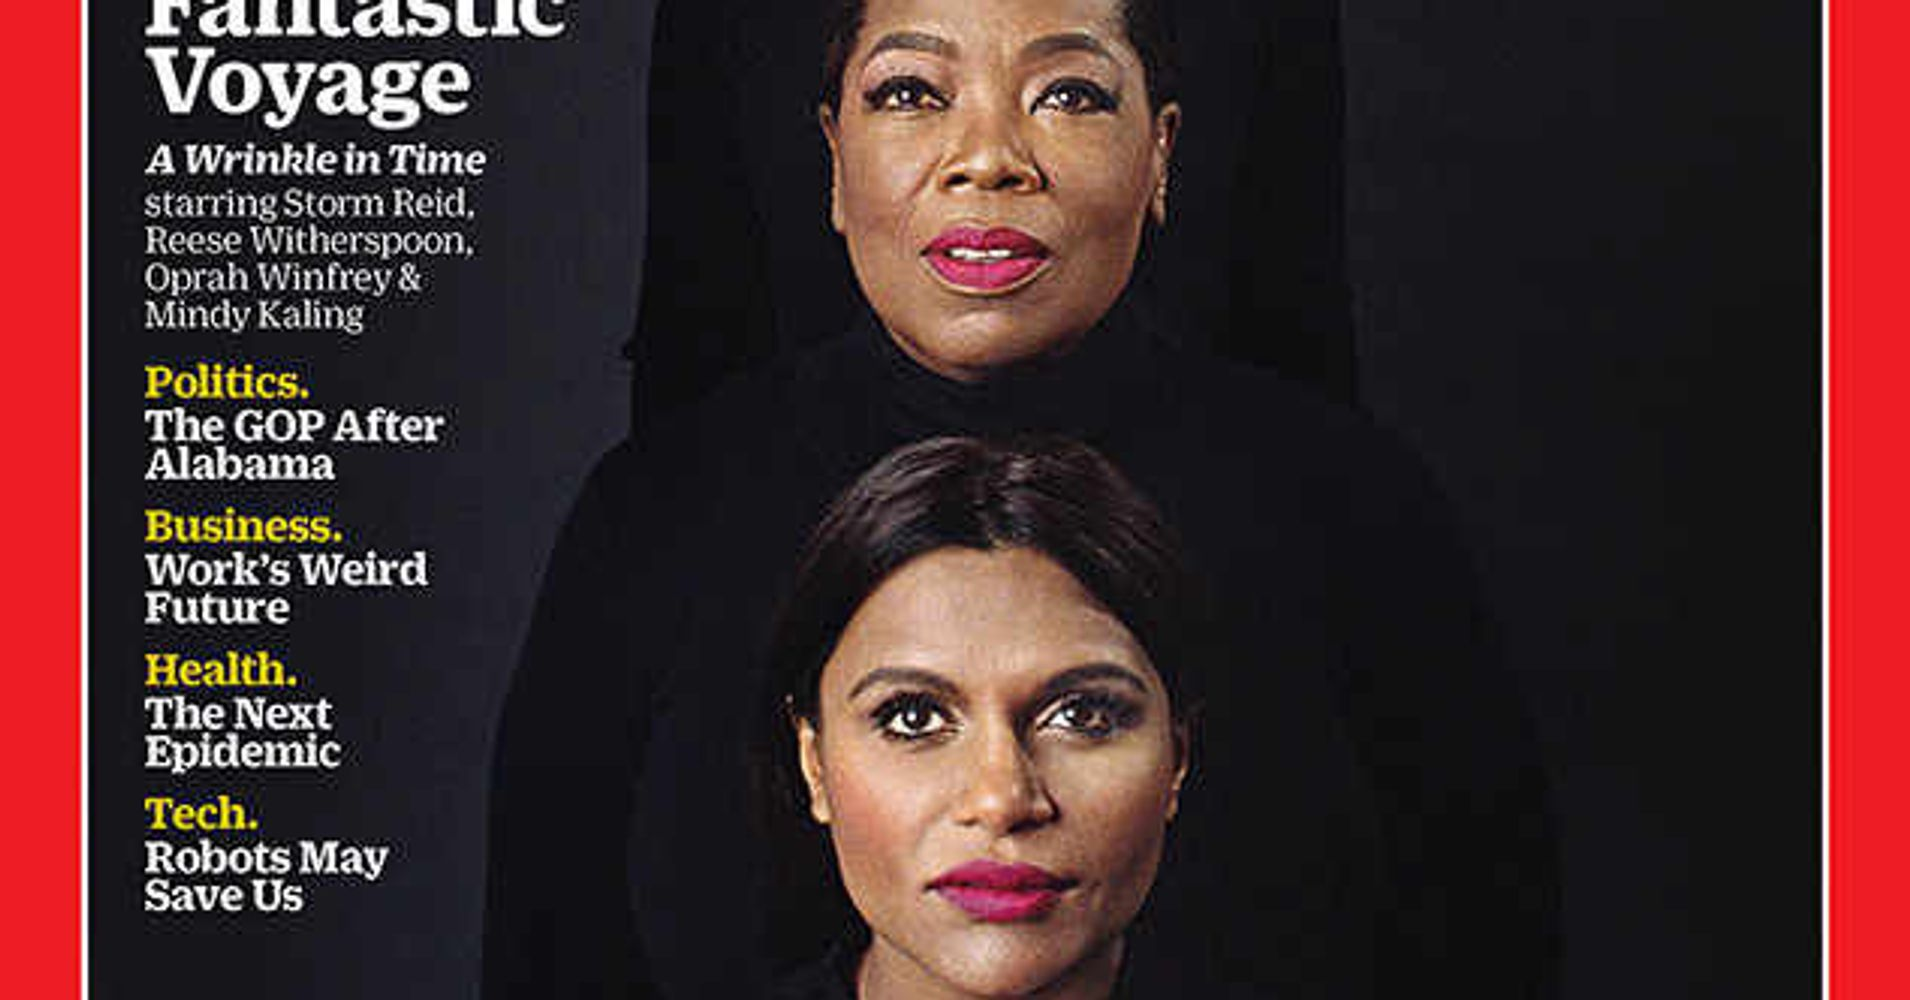 Quotes From A Wrinkle In Time: The Cast Of 'A Wrinkle In Time' Is Pure Magic On The Cover